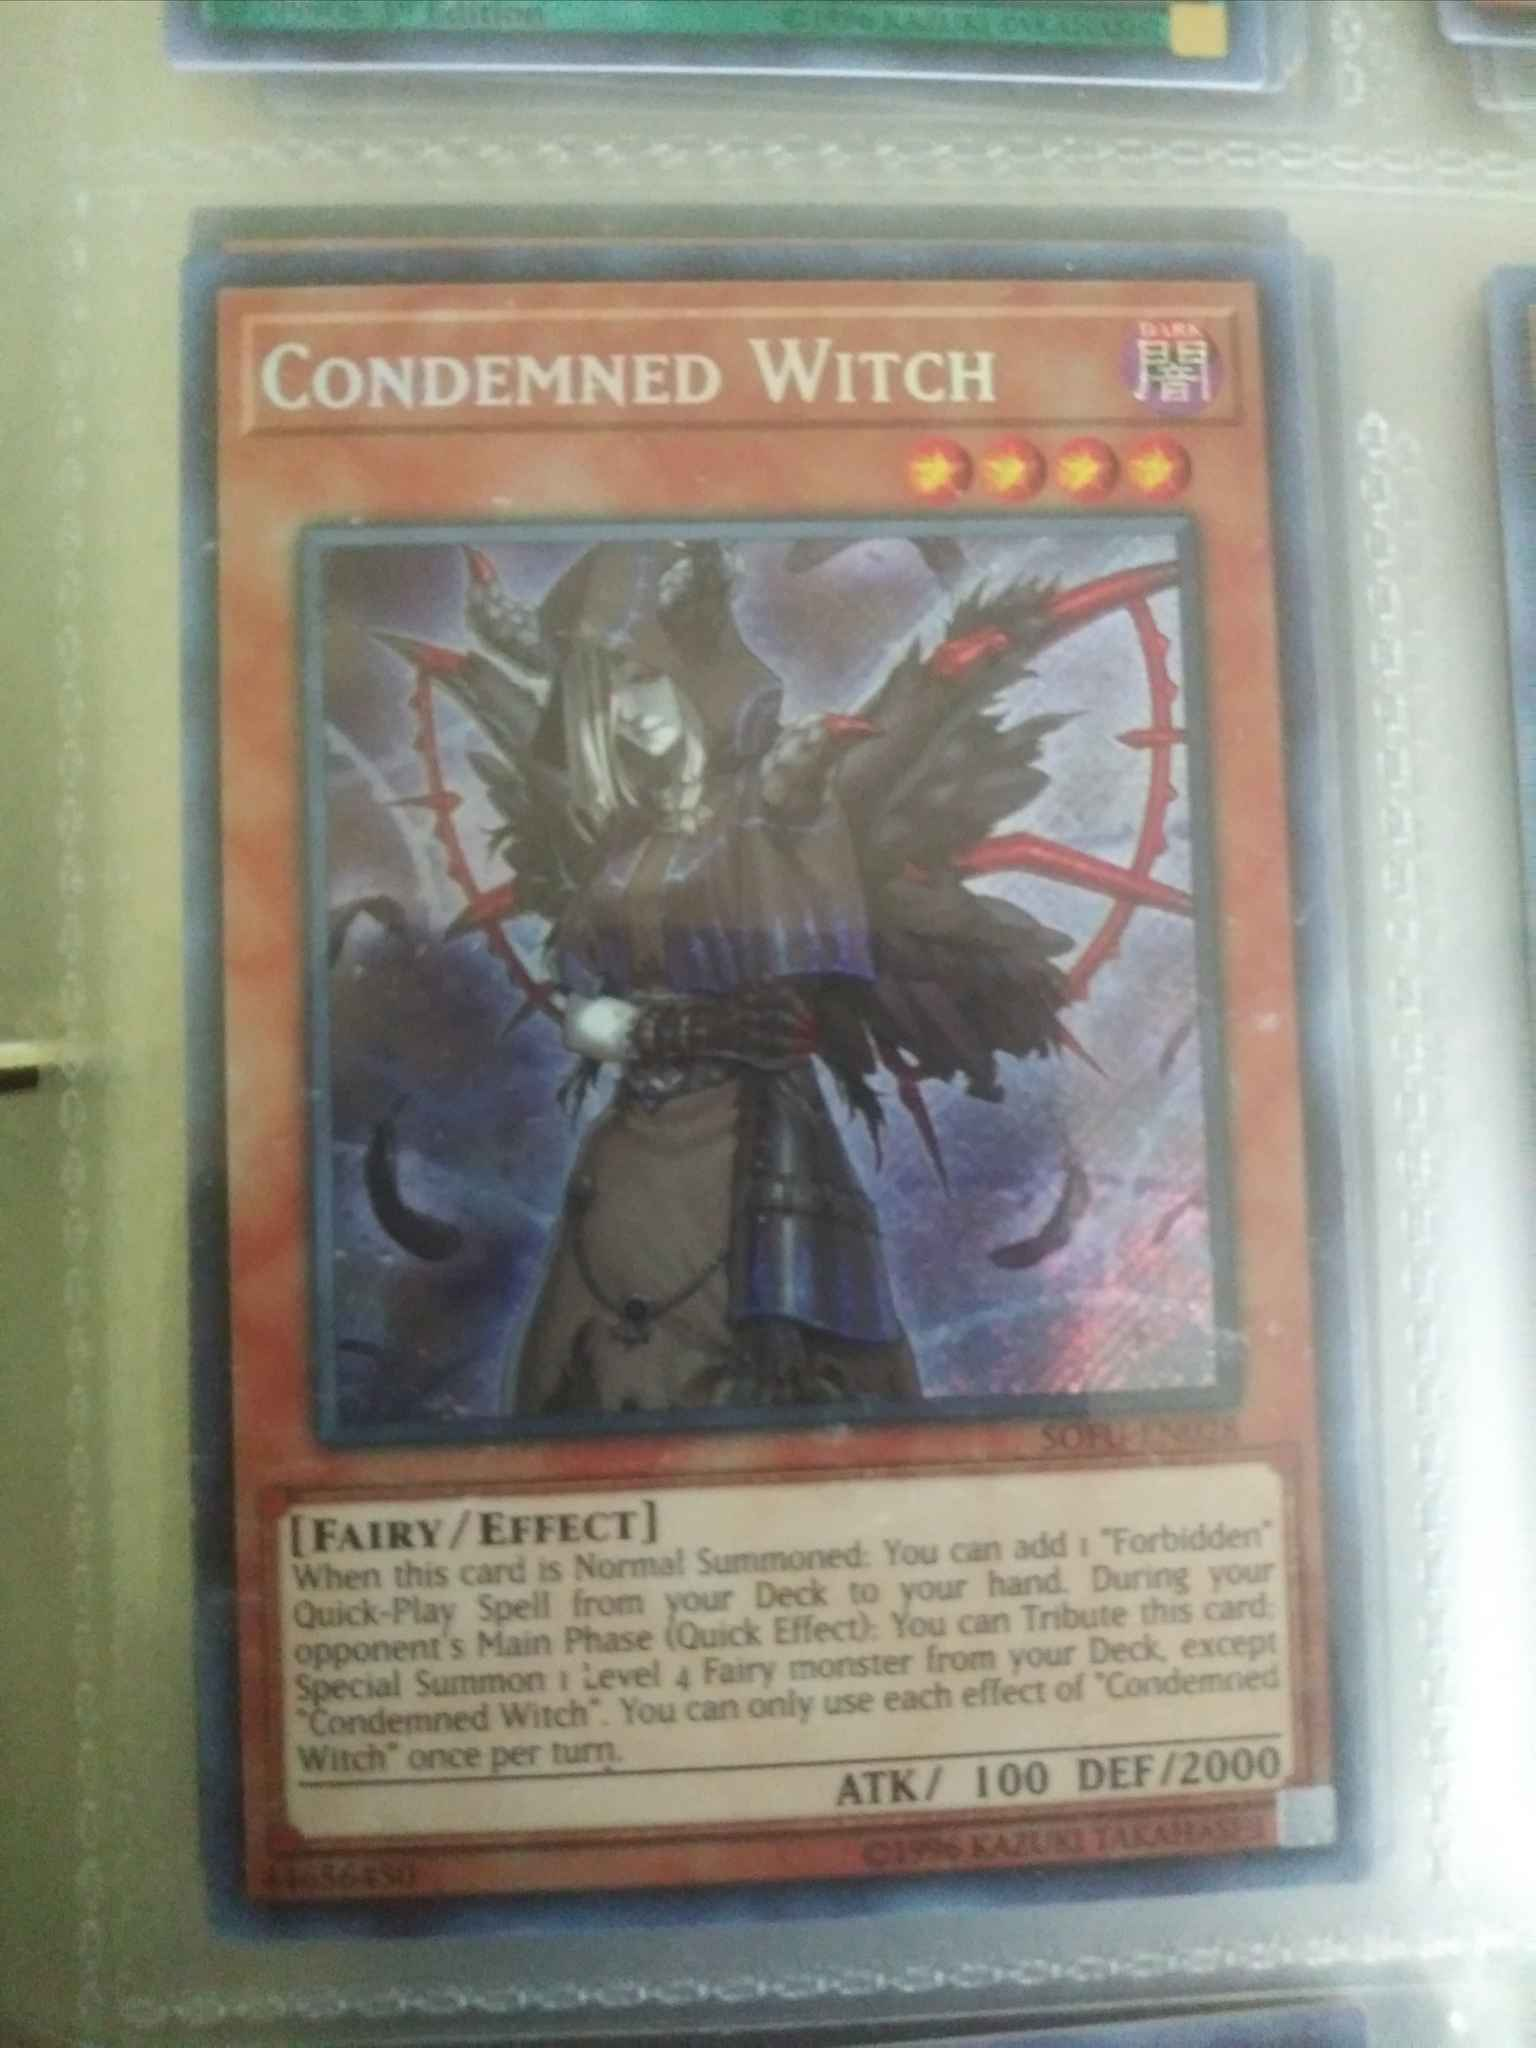 Spike The Complete Story PALZ Redemption Card PTR-1 Unredeemed